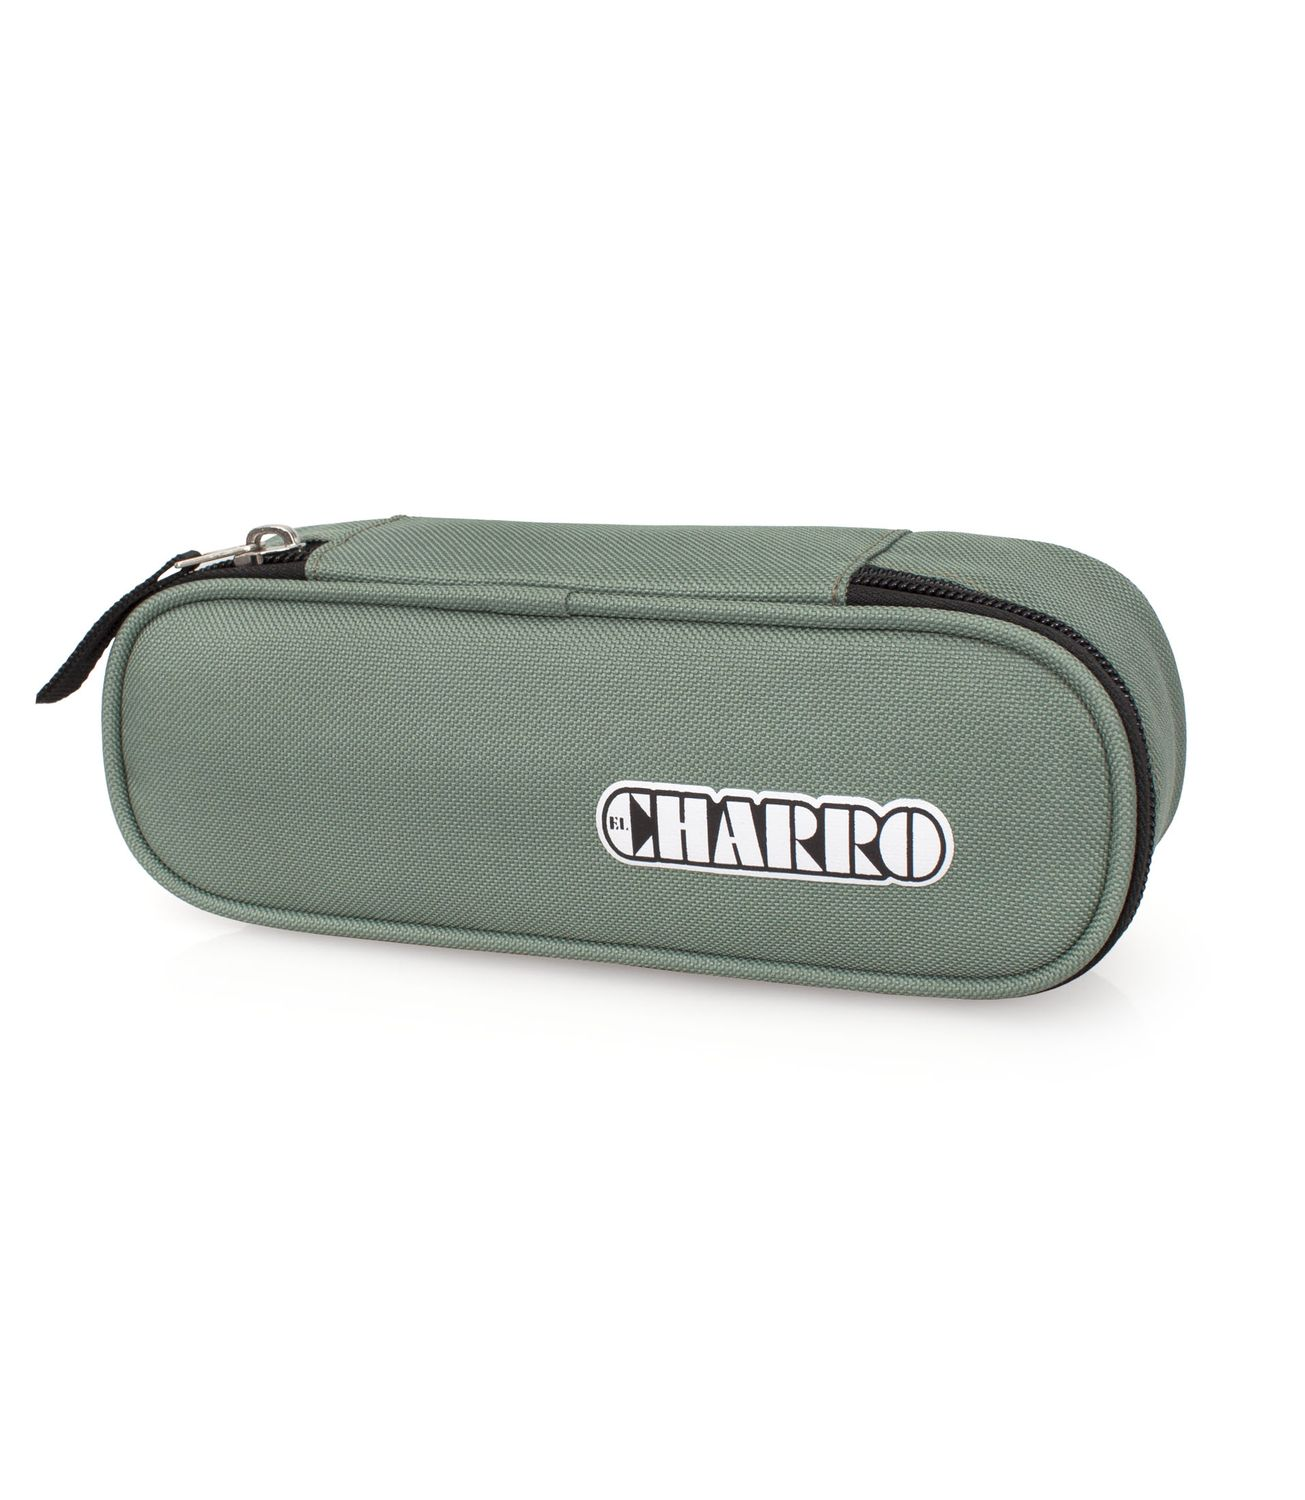 EL CHARRO BASIC Oval Pencil Case Soft Green